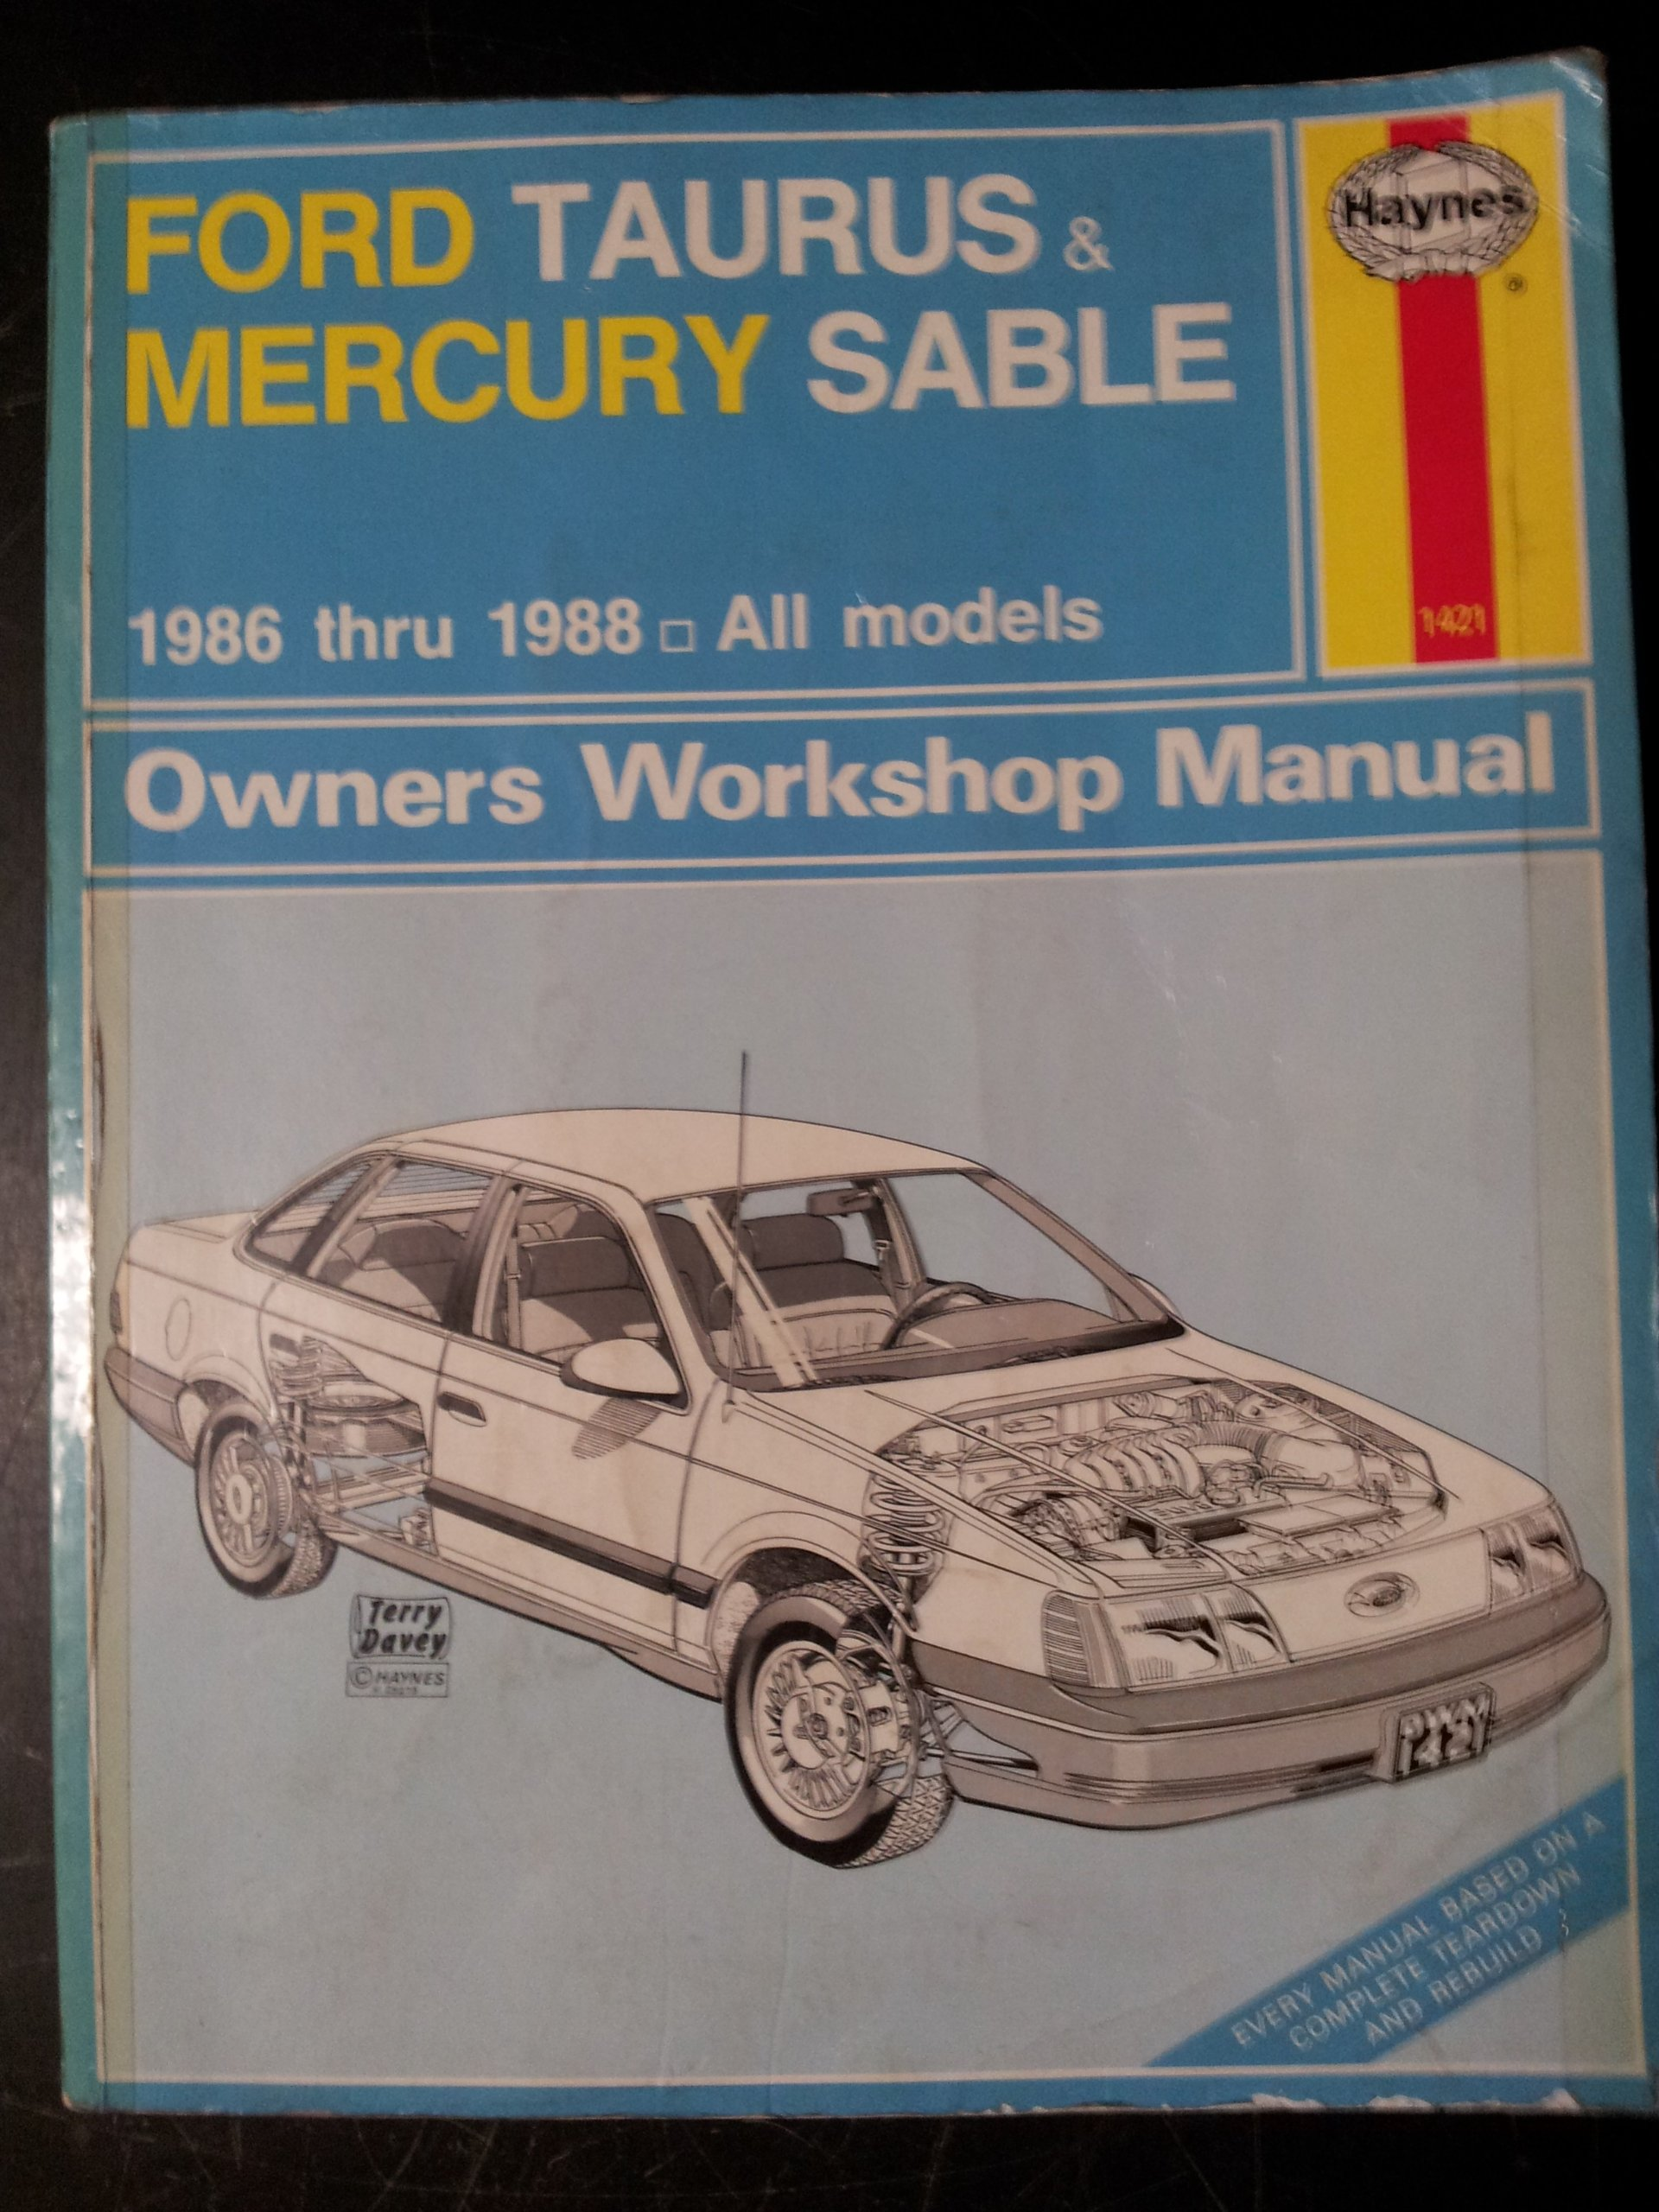 Ford Taurus & Mercury Sable owners workshop manual (Haynes owners workshop  manual series): Bob Henderson: 9781850104216: Amazon.com: Books